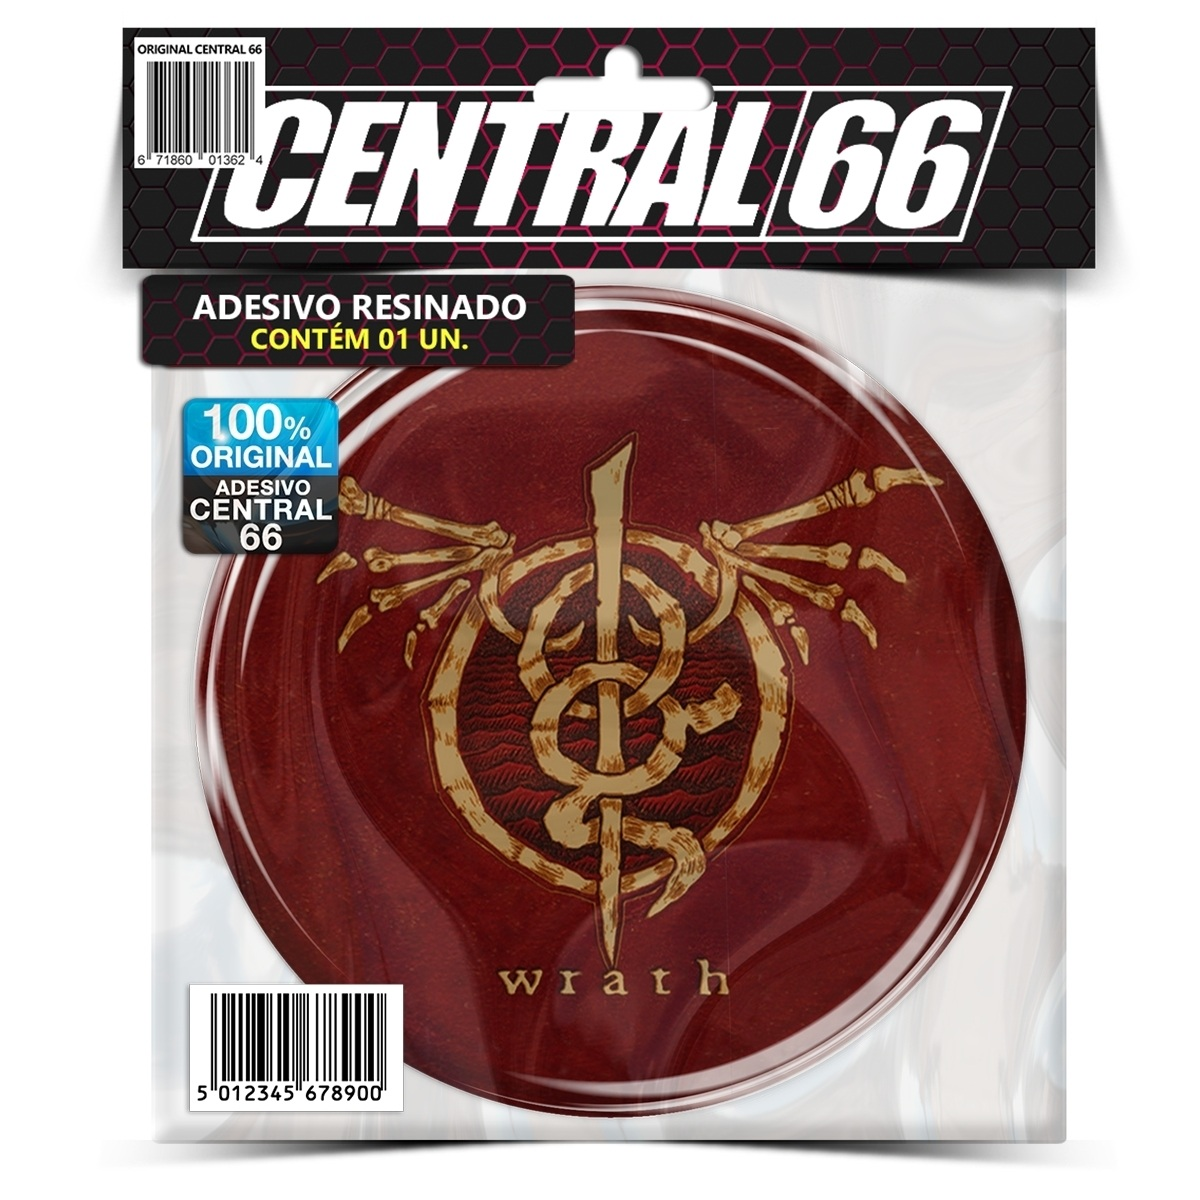 Adesivo Redondo Lamb of God Wrath – Central 66